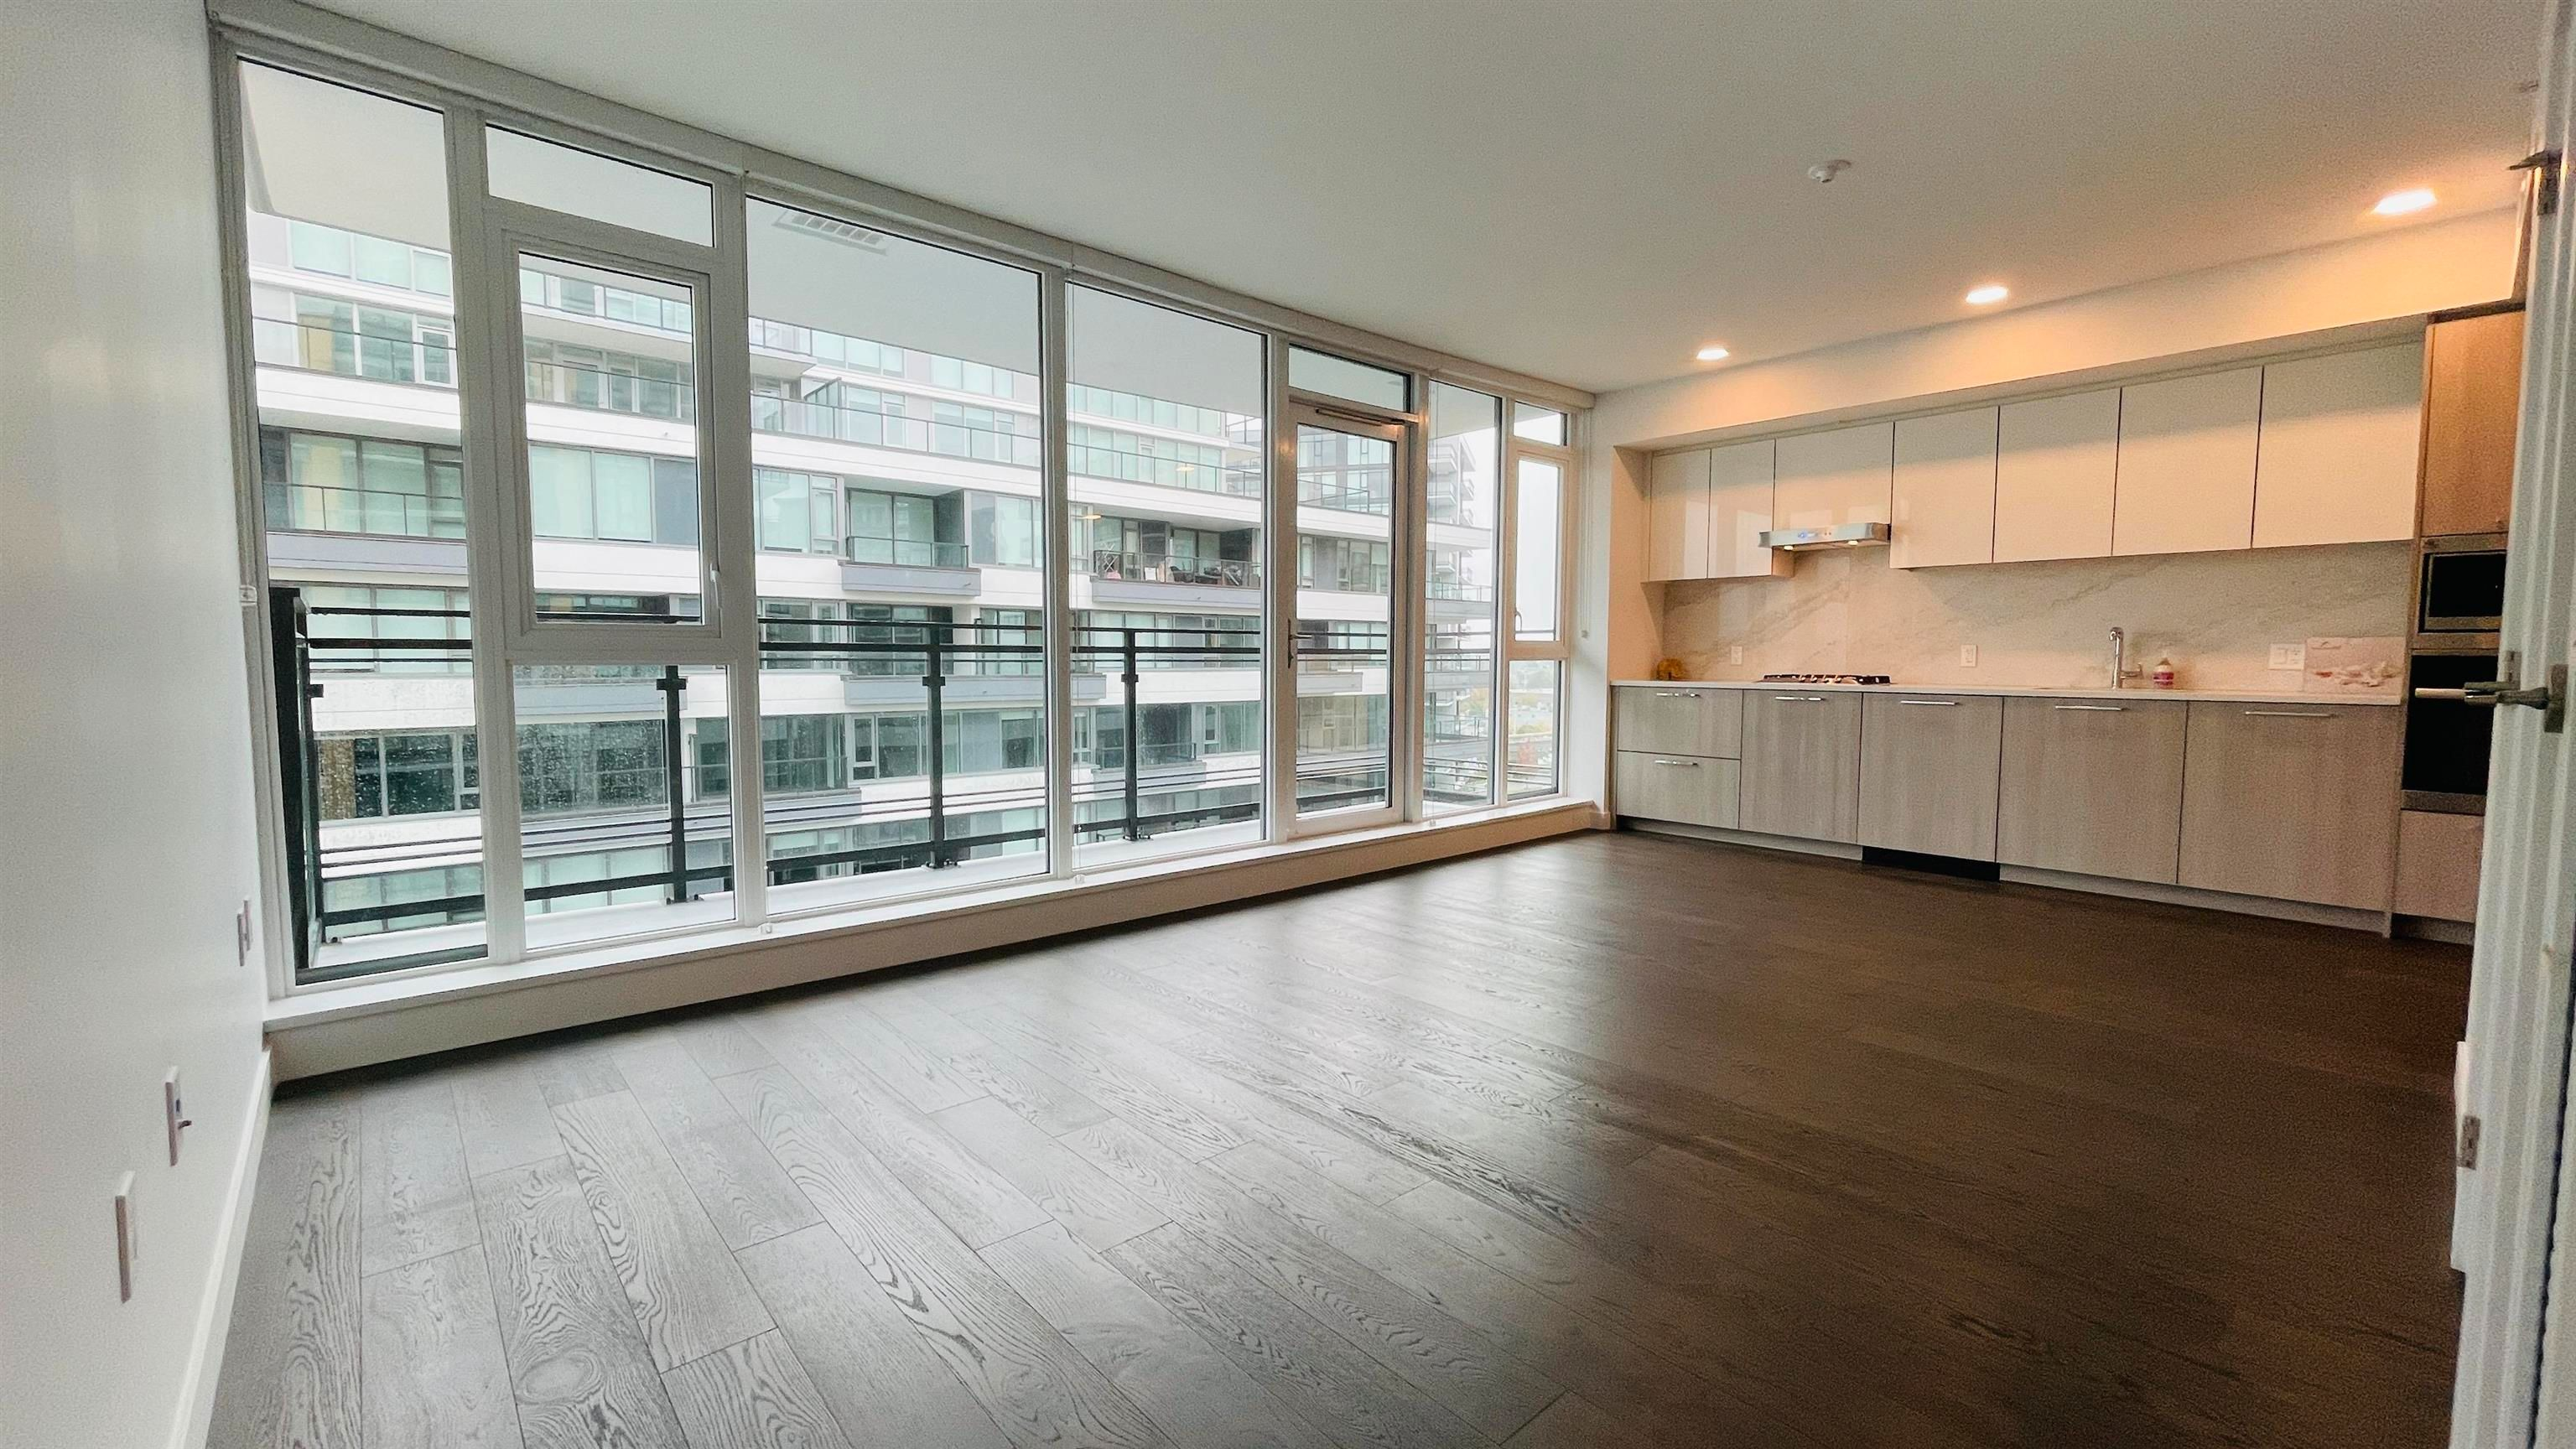 """Main Photo: 1002 3200 CORVETTE Way in Richmond: West Cambie Condo for sale in """"Spark"""" : MLS®# R2620332"""